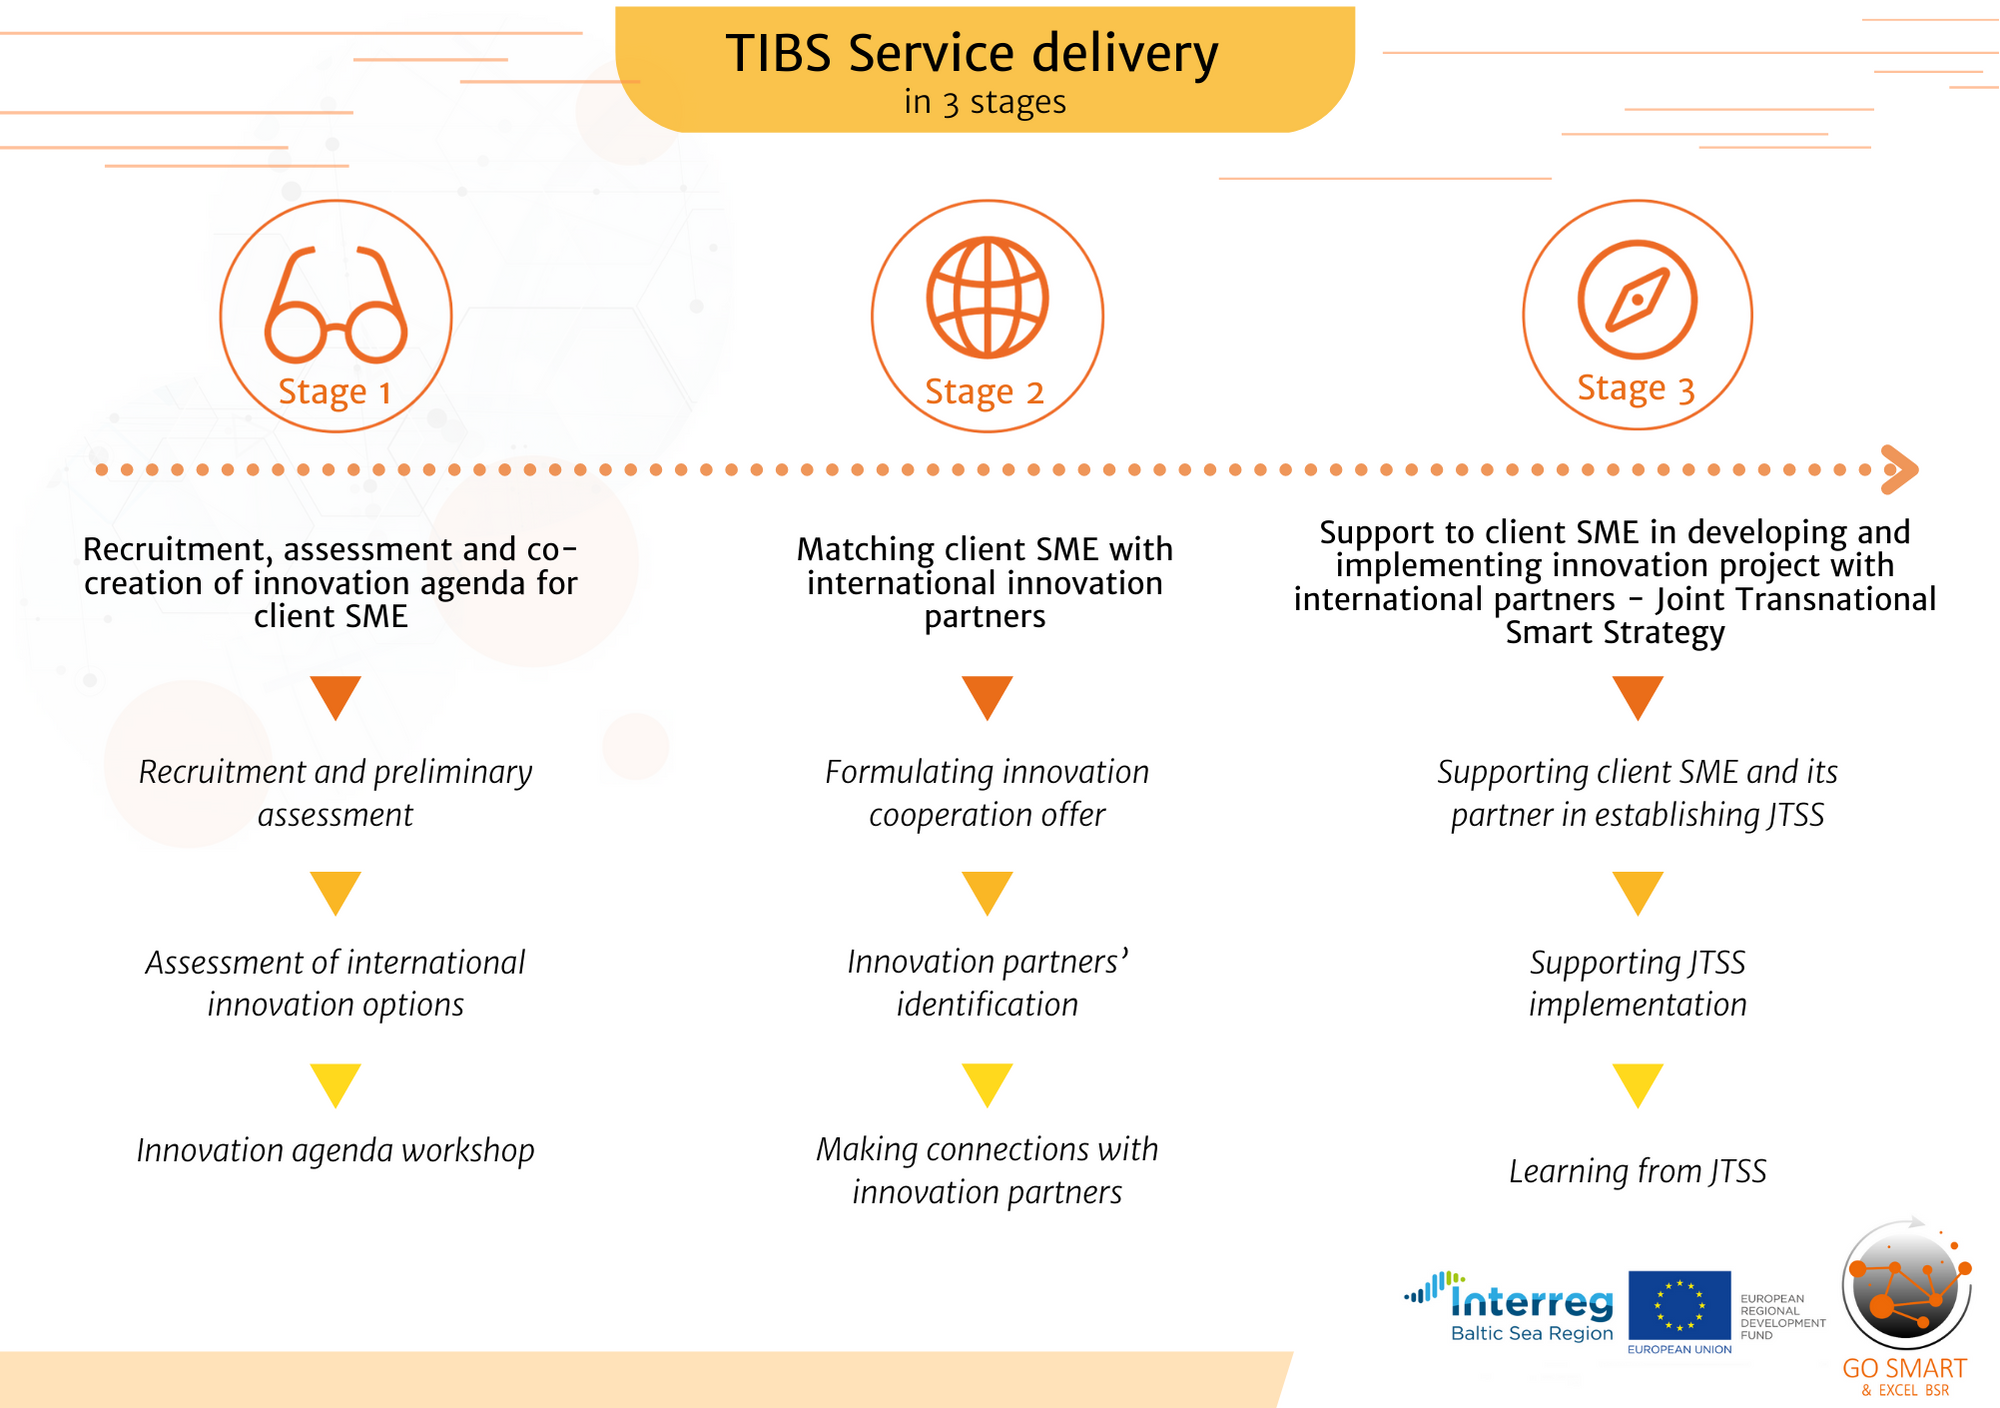 tibs-service-delivery_